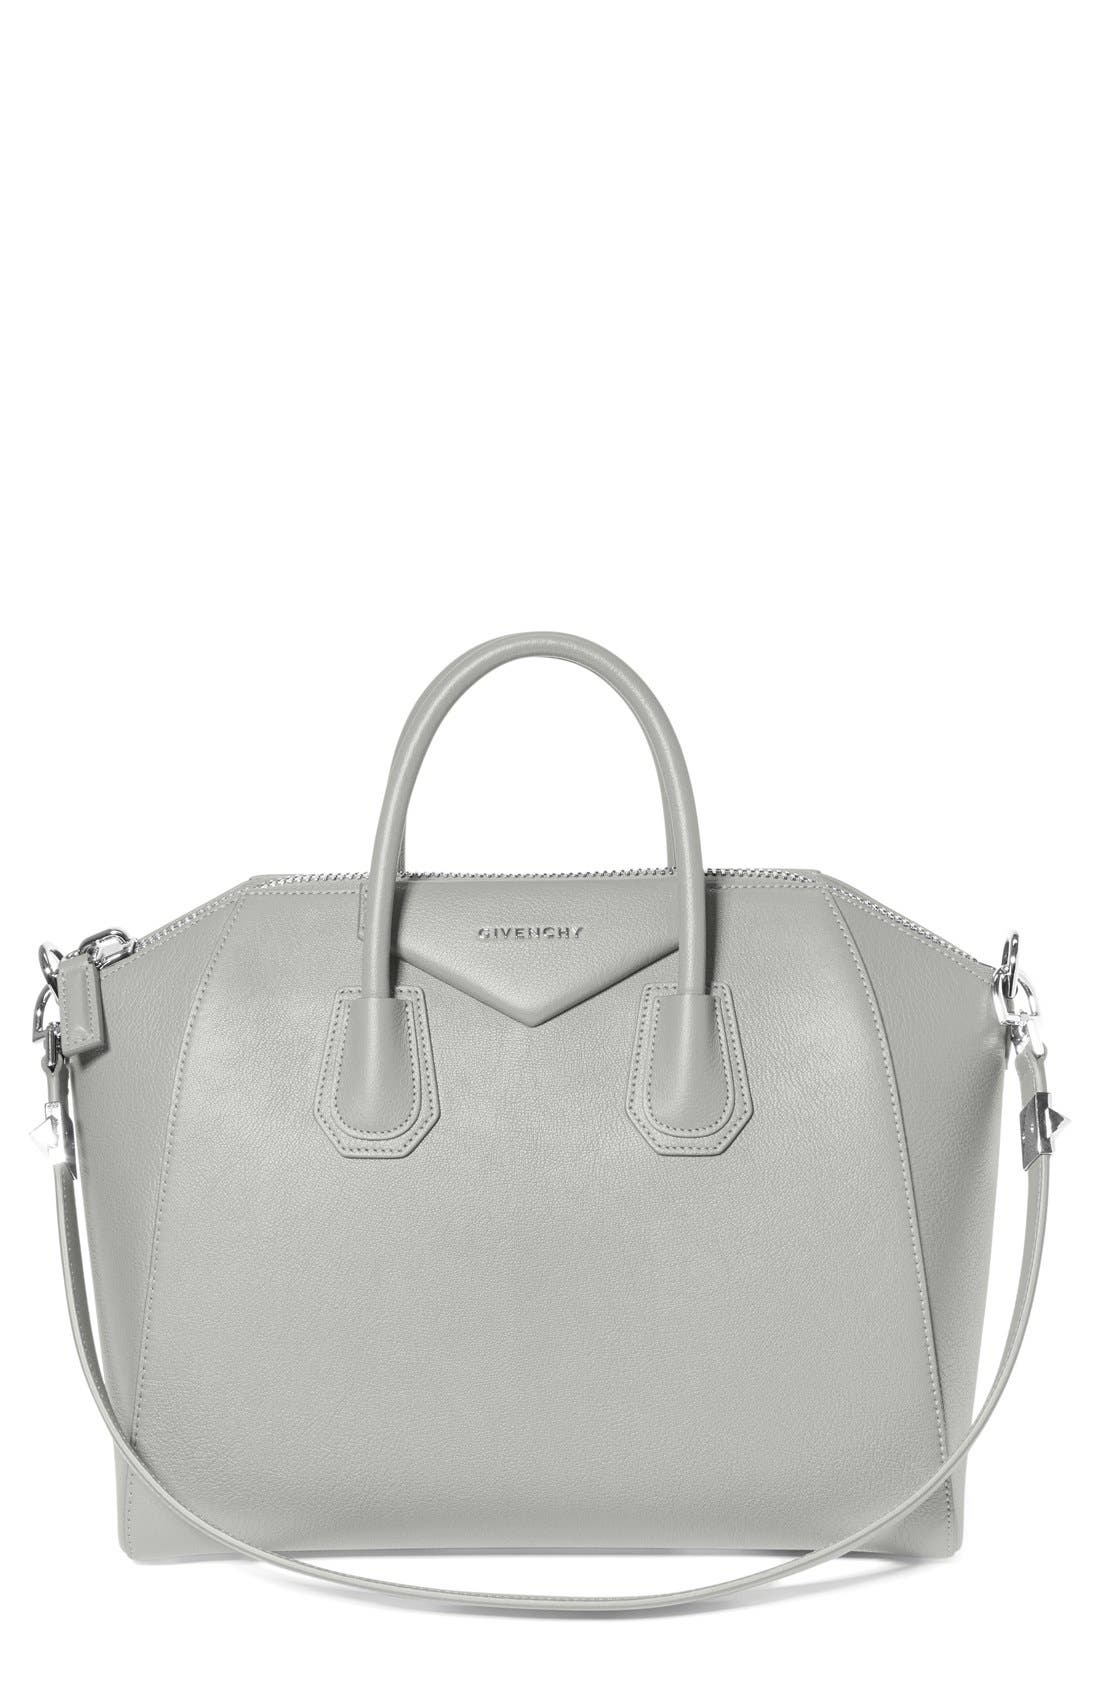 'Medium Antigona' Sugar Leather Satchel,                         Main,                         color, PEARL GREY